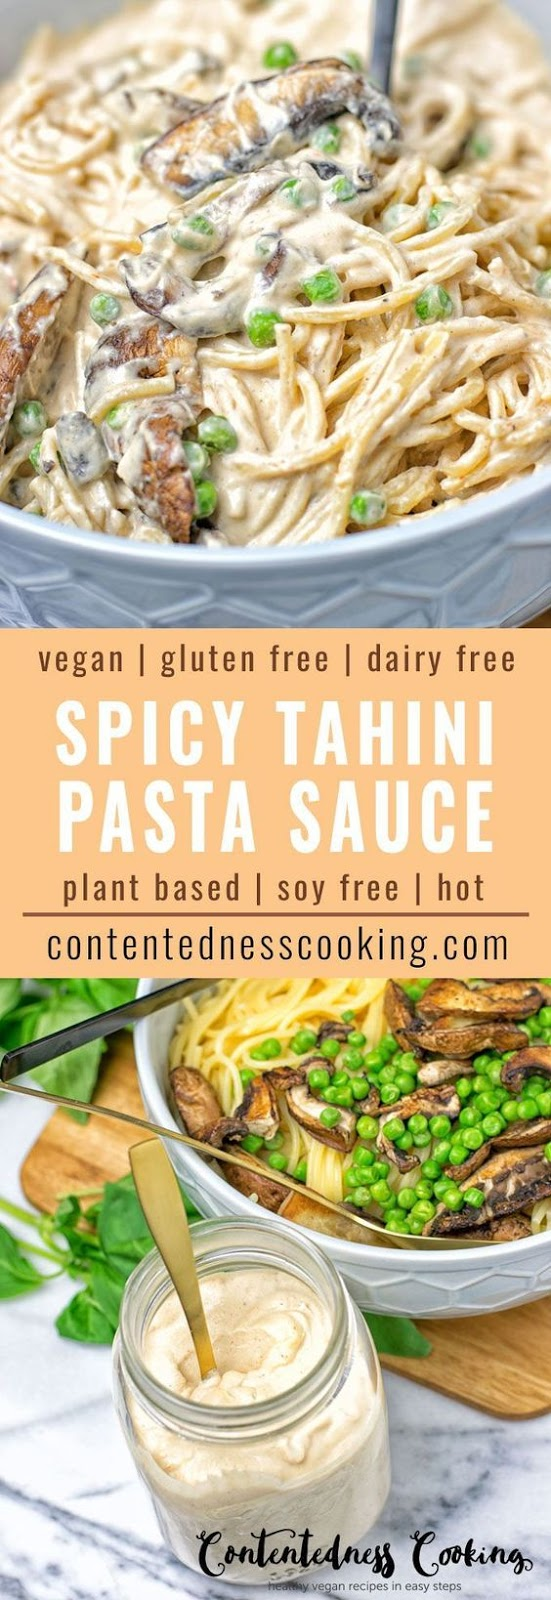 SPICY TAHINI PASTA SAUCE #spicy #tahini #pasta #pastarecipes #sauce #veganrecipes #veggies #vegan #glutenfree #dairyfree